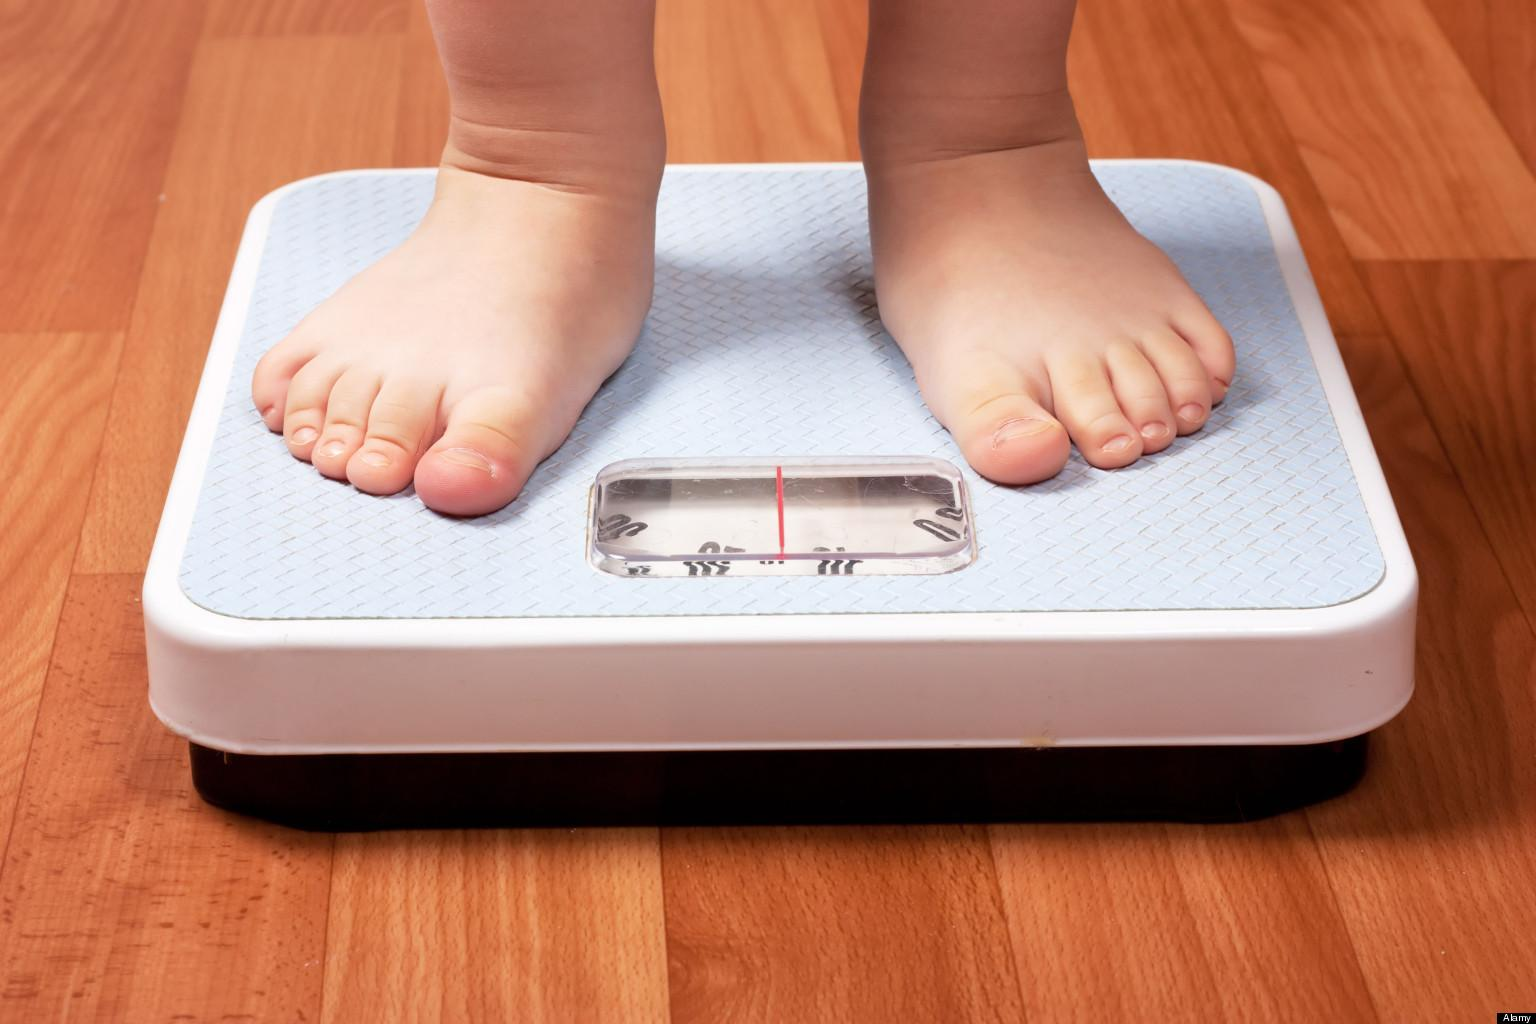 http://i.huffpost.com/gen/1078295/images/o-CHILDHOOD-OBESITY-FACTORS-facebook.jpg